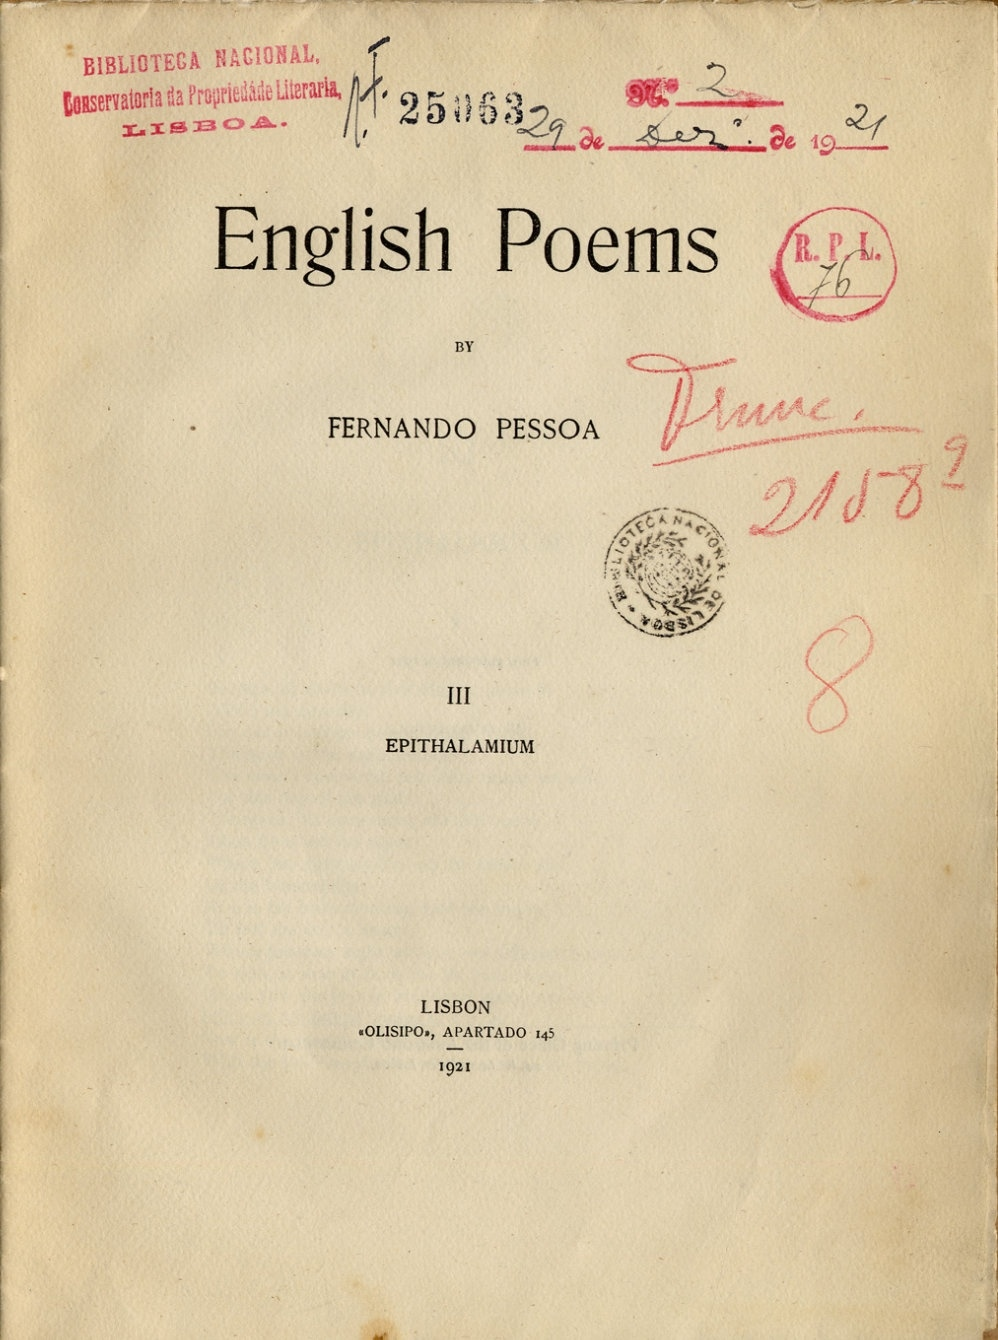 cfp_english_poems_III.jpg